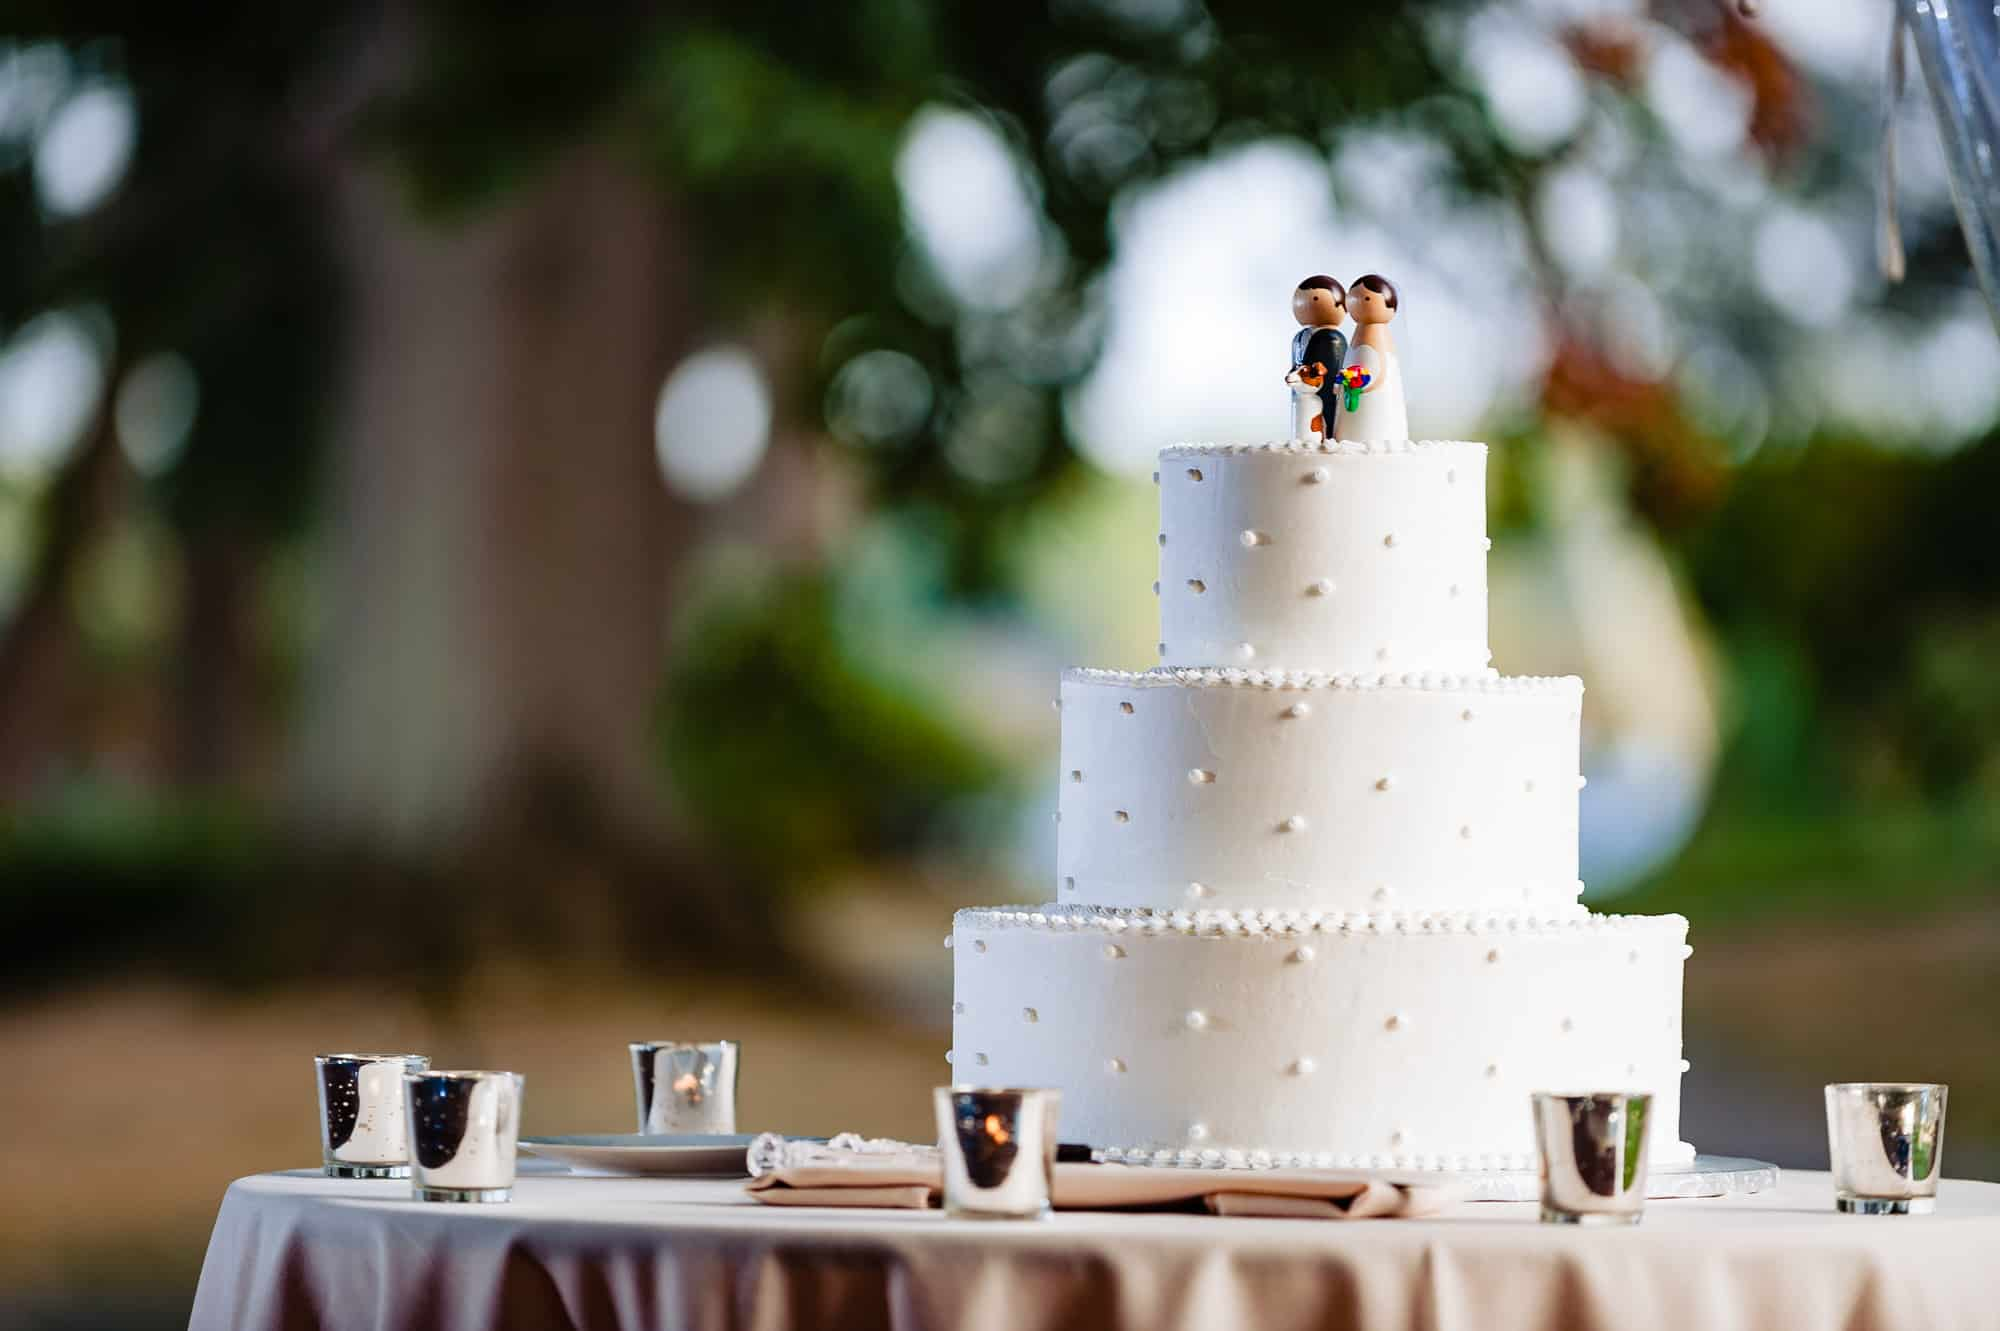 Wedding cake with tiny bride and groom on top